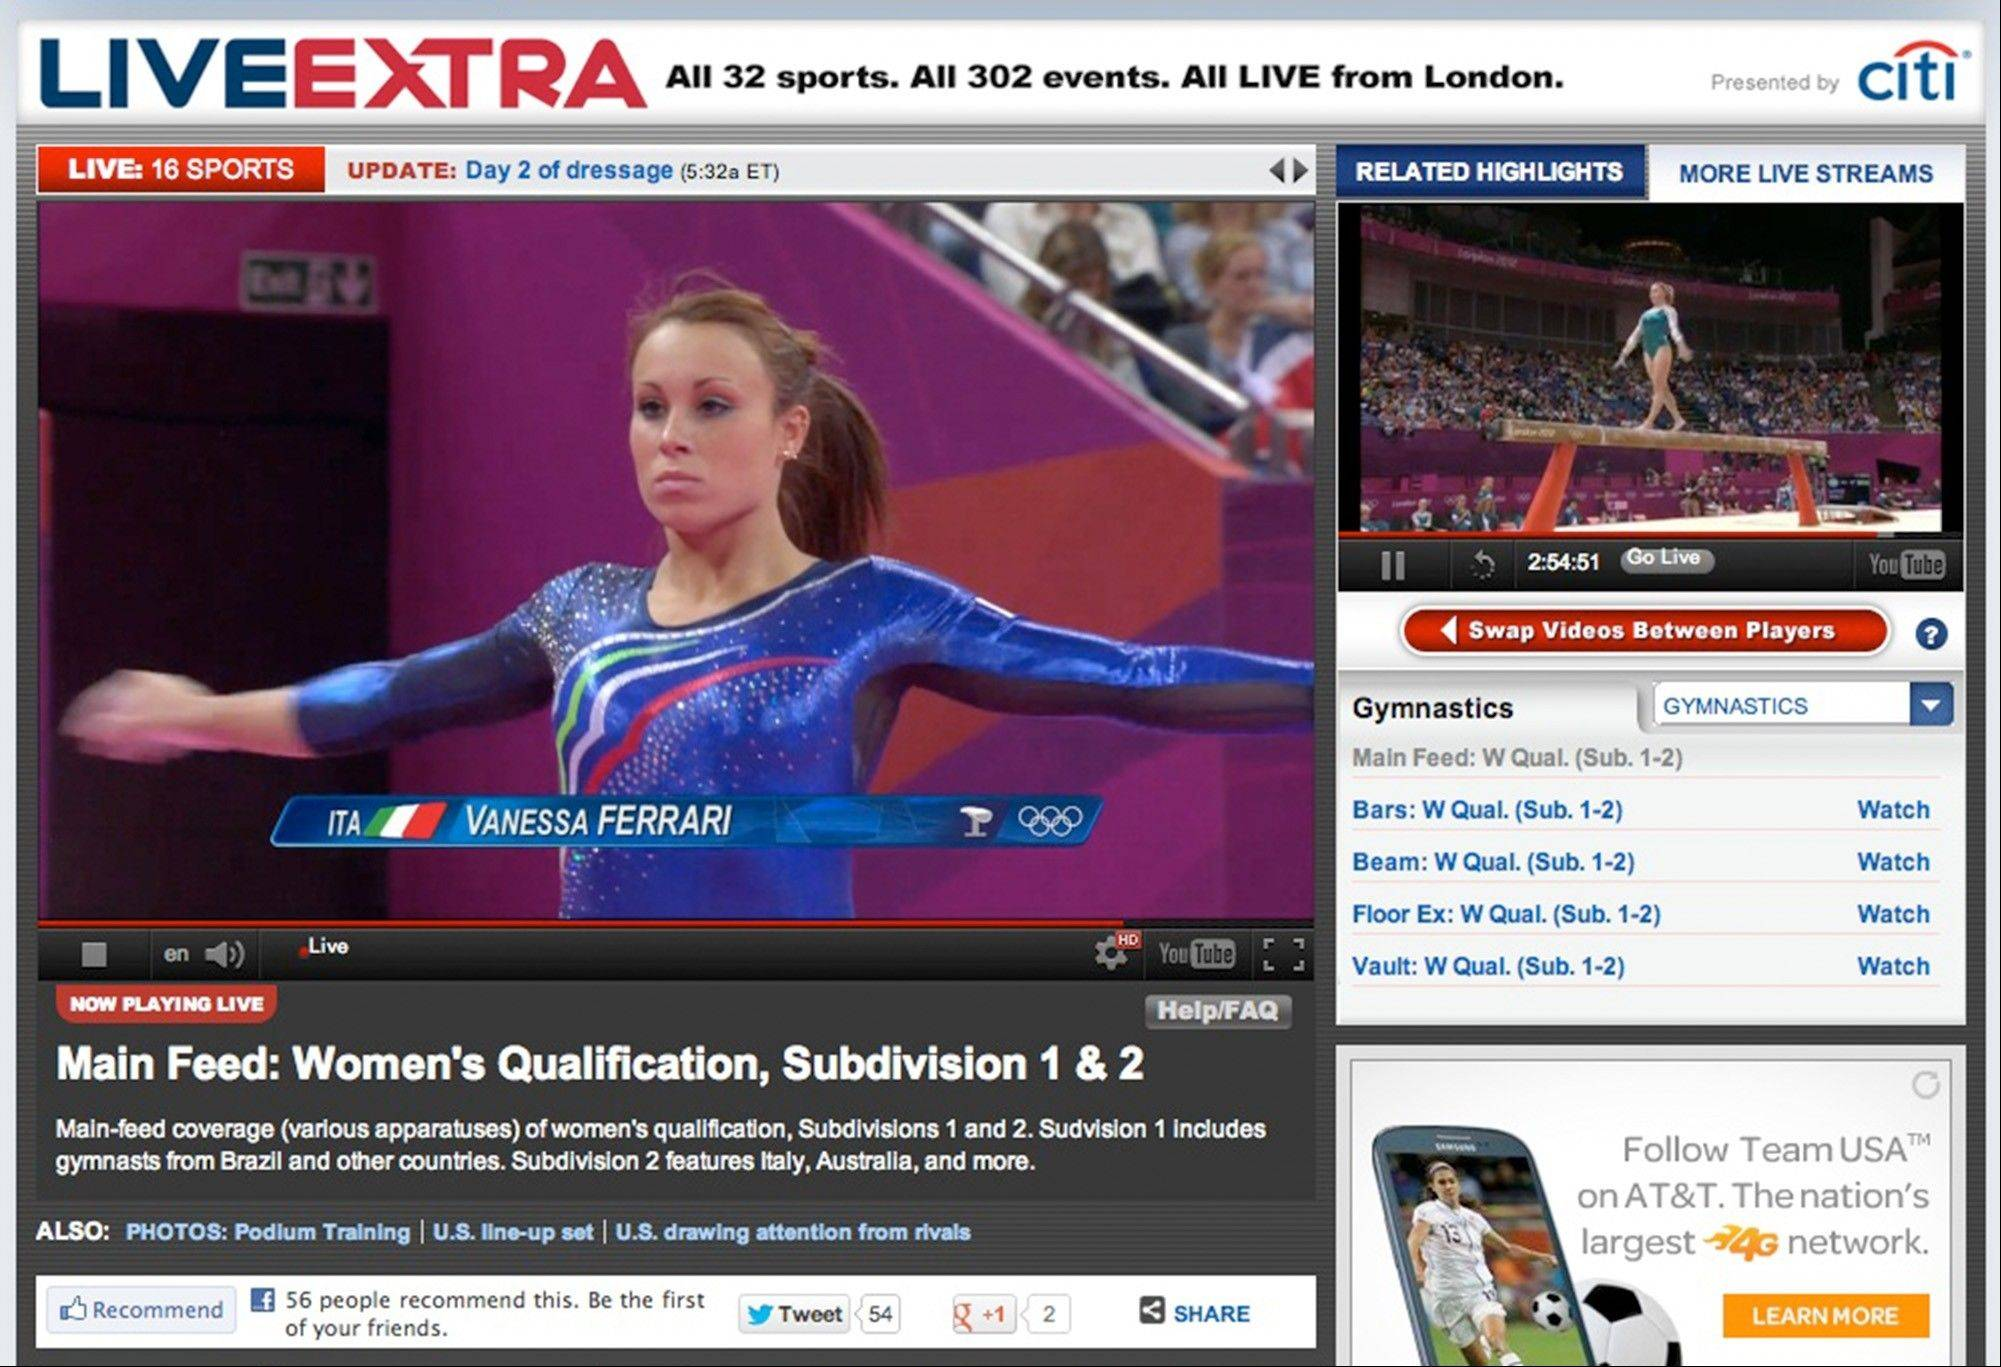 With more Olympic coverage available online, it's a little easier to follow foreign athletes competing at the games.